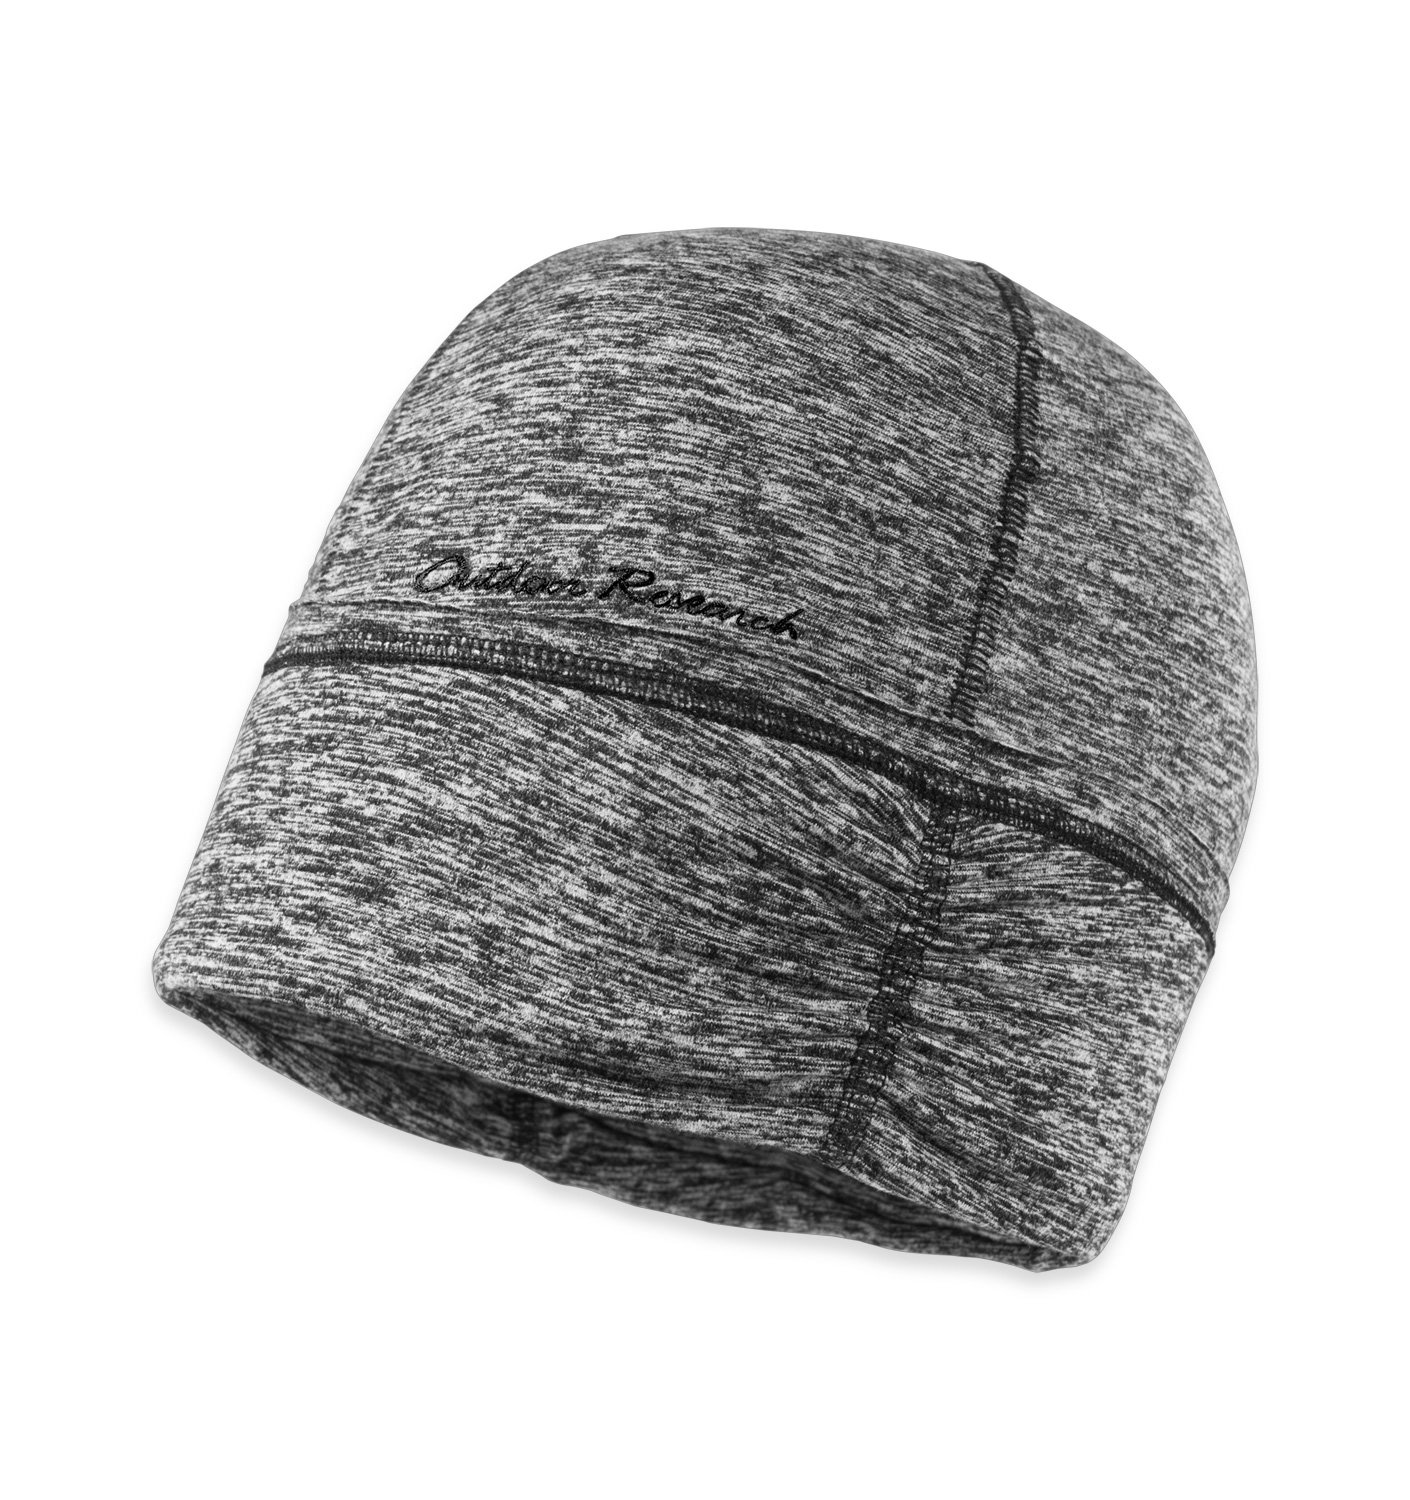 Outdoor Research Girls' Melody Beanie, Black, 1size